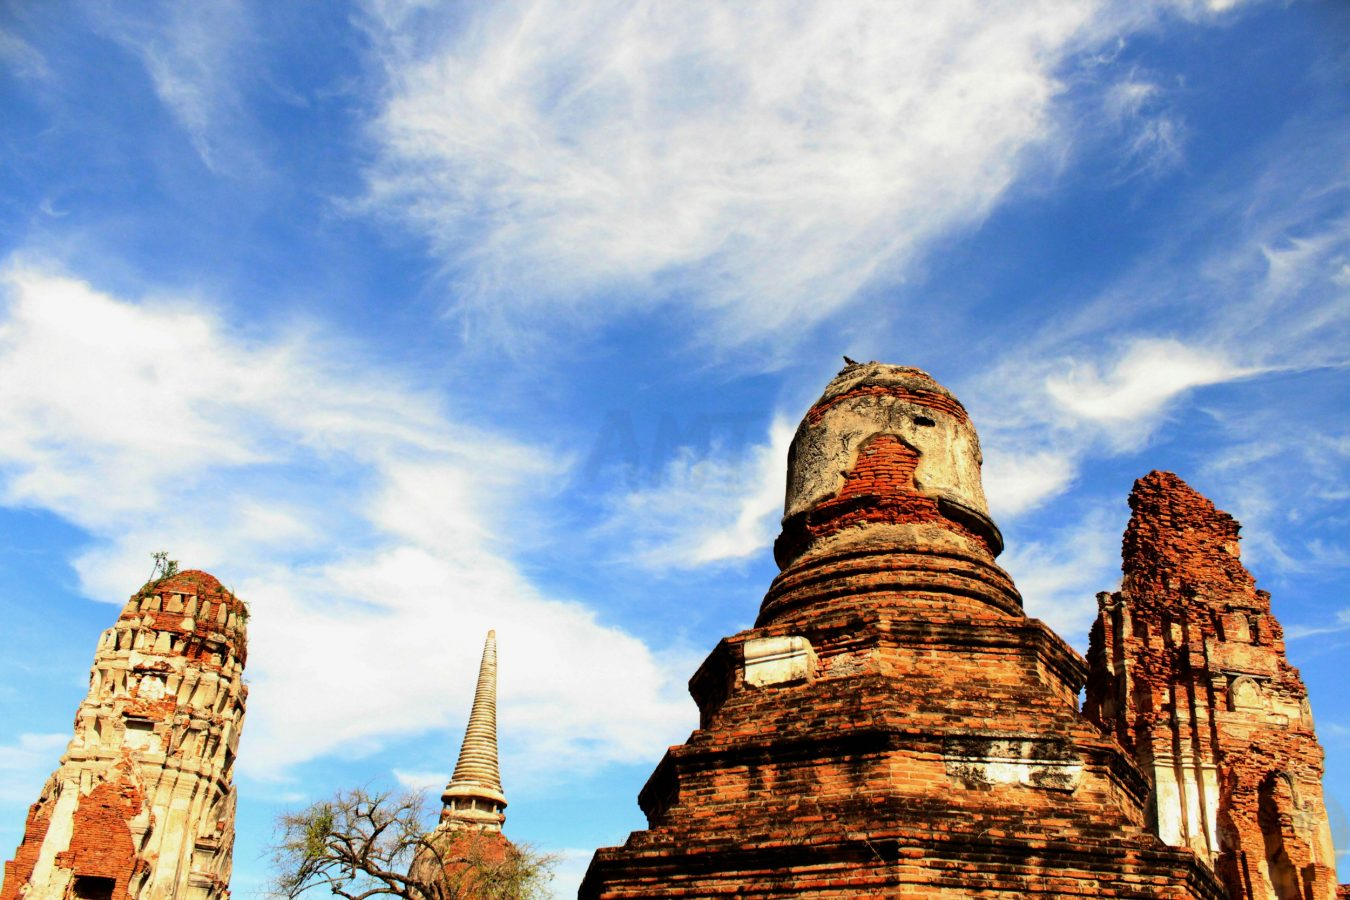 Wat Phra Mahathat reaching the sky